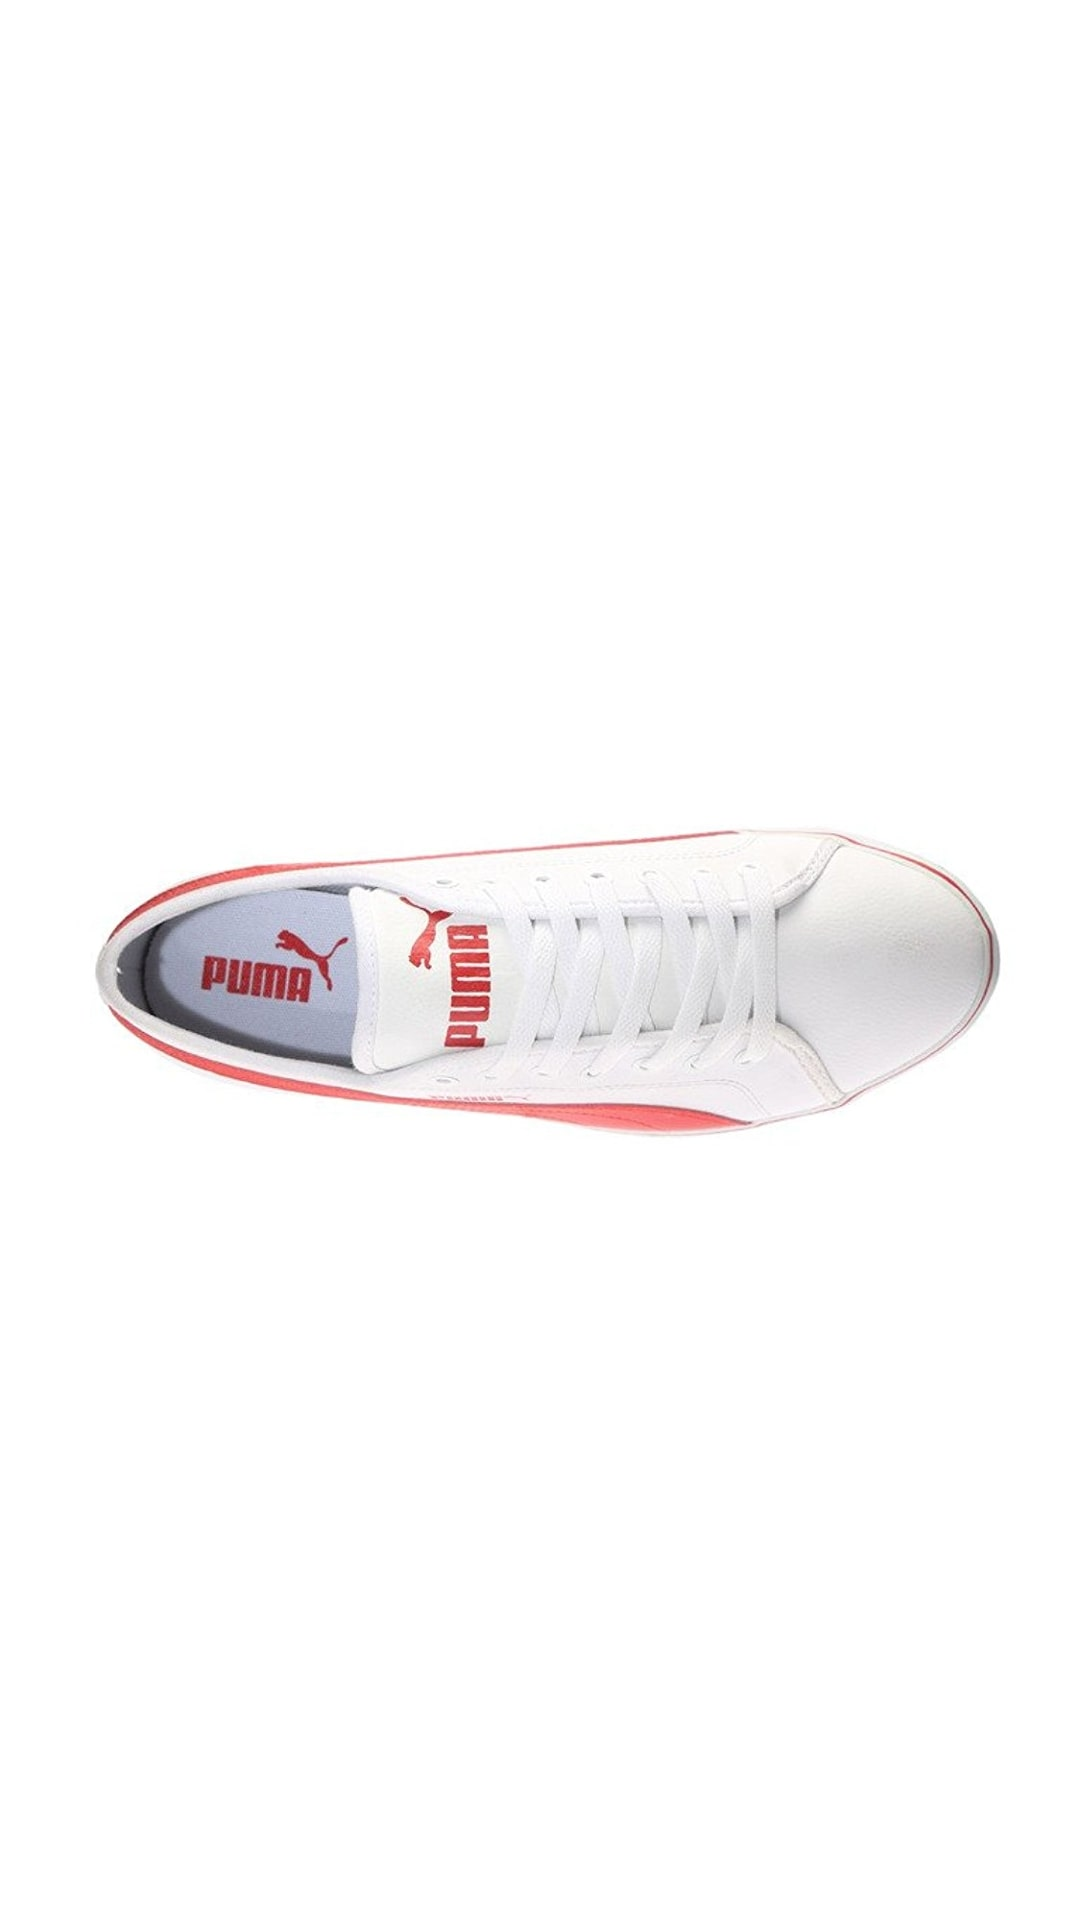 Buy Puma Men White Sneakers Online at Low Prices in India - Paytmmall.com 7c863db4f